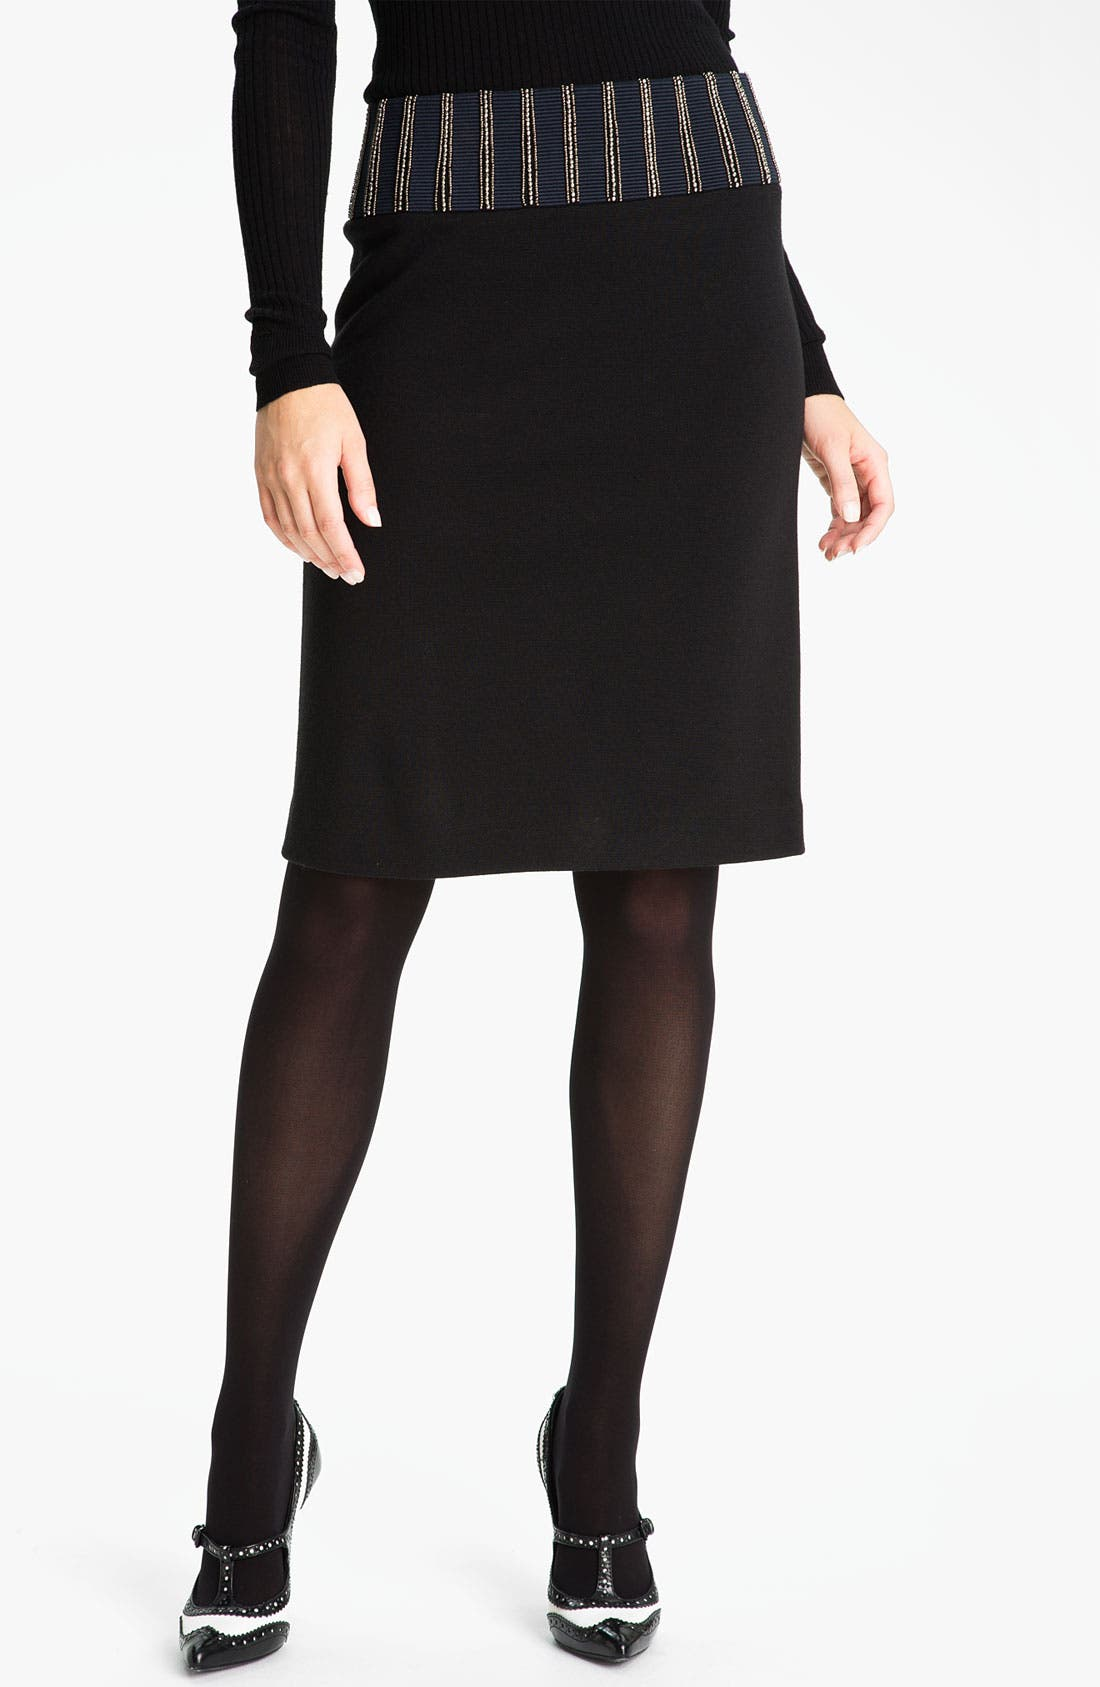 Main Image - Tory Burch 'Thalia' Pencil Skirt (Online Exclusive)